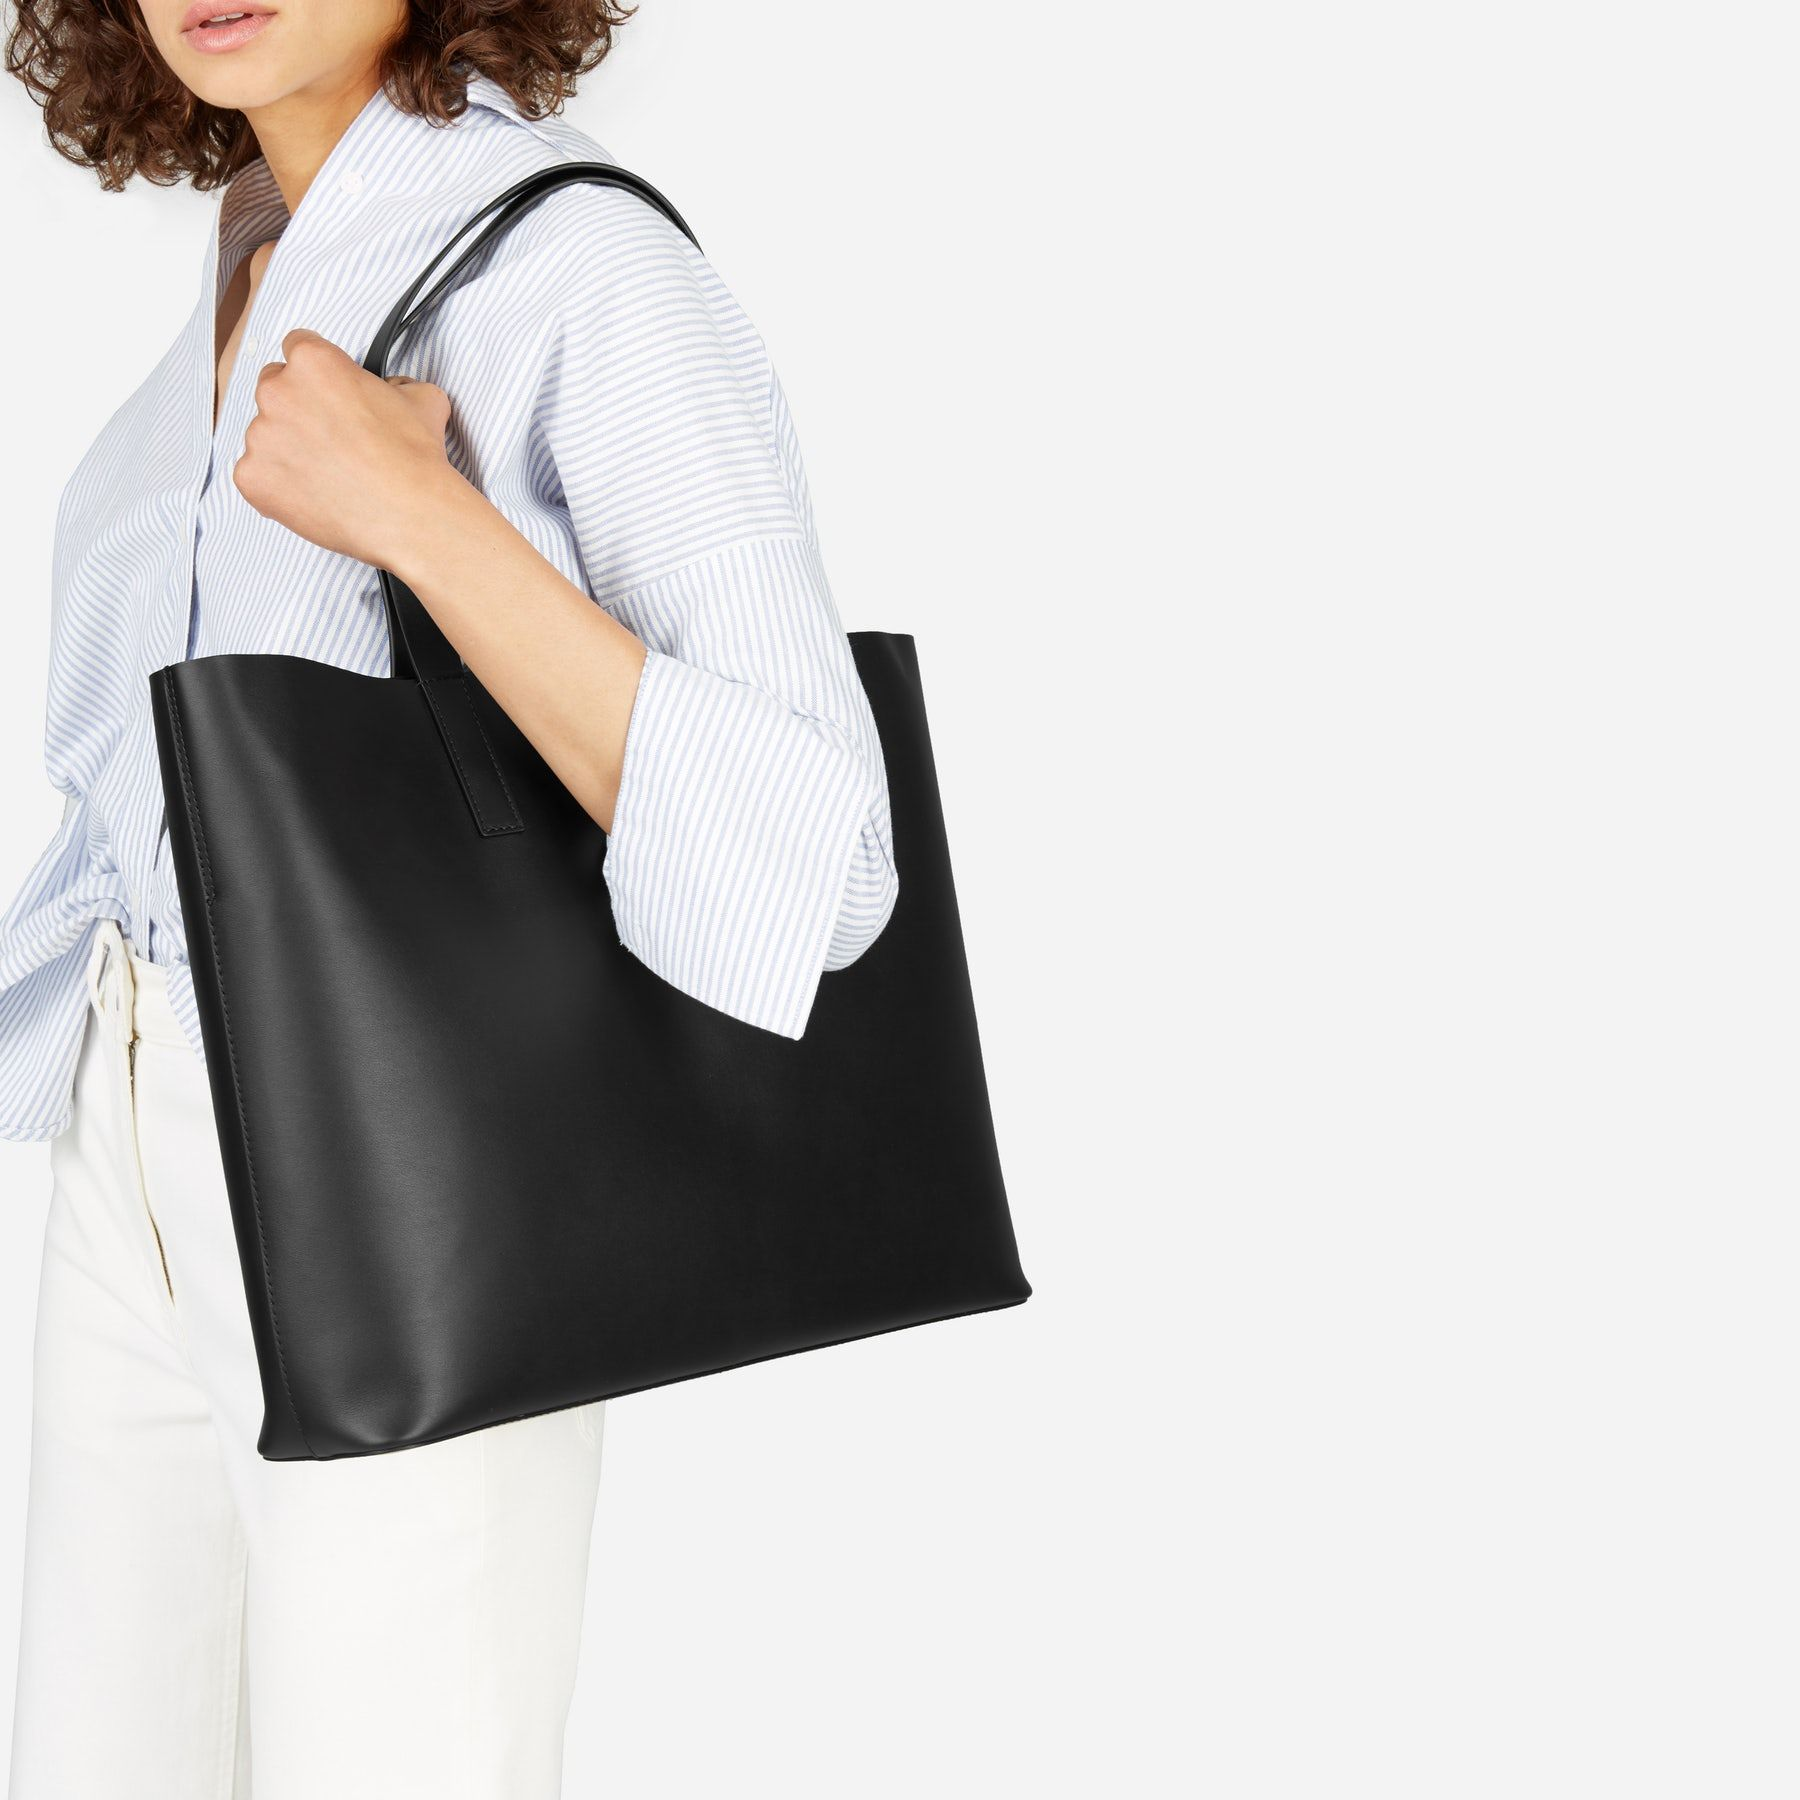 e5bc73ef1 Women's Day Market Tote | Everlane | Things to wear | Day bag ...